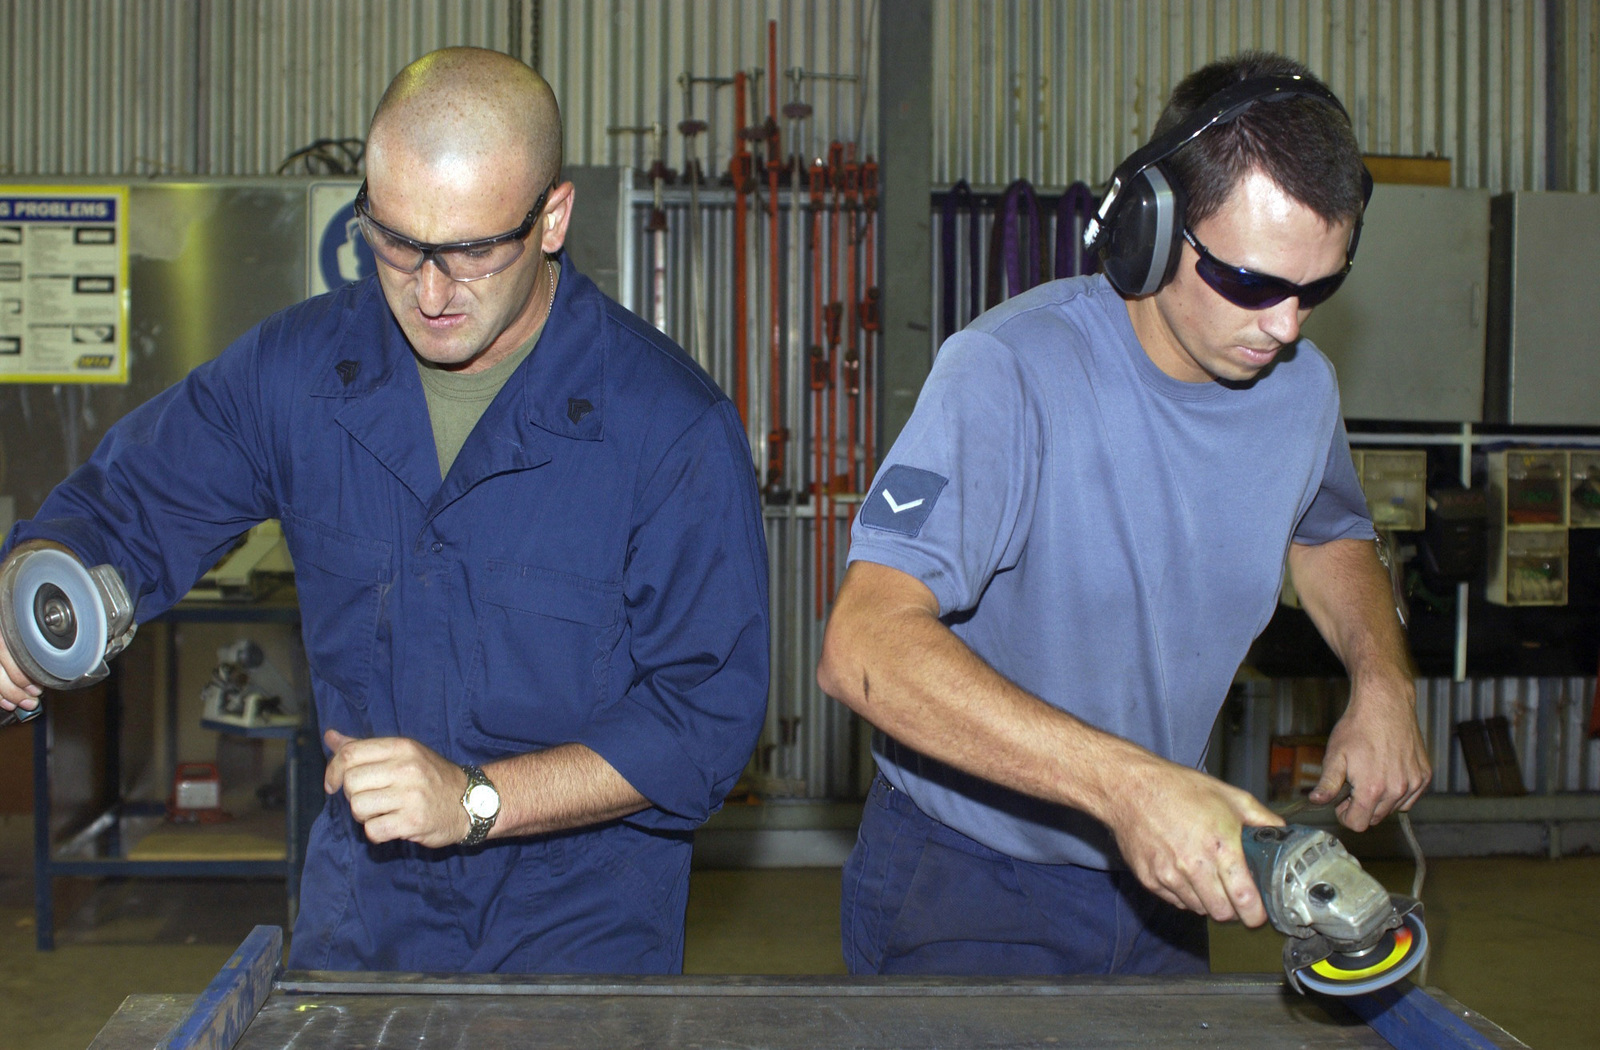 US Marine Corps (USMC) Sergeant (SGT) Steve Hamilton (left), Assistant Maintenance CHIEF, Aircraft Recovery, and a Royal Australian Air Force (RAAF) Airmen use handheld metal grinders while working inside the aircraft maintenance shop at Royal Australian Air Force Base (RAAFB) Tindal, Australia, during Exercise SOUTHERN FRONTIER. The exercise is a combined exercise with the US Marine Corps (USMC) and the Australian military